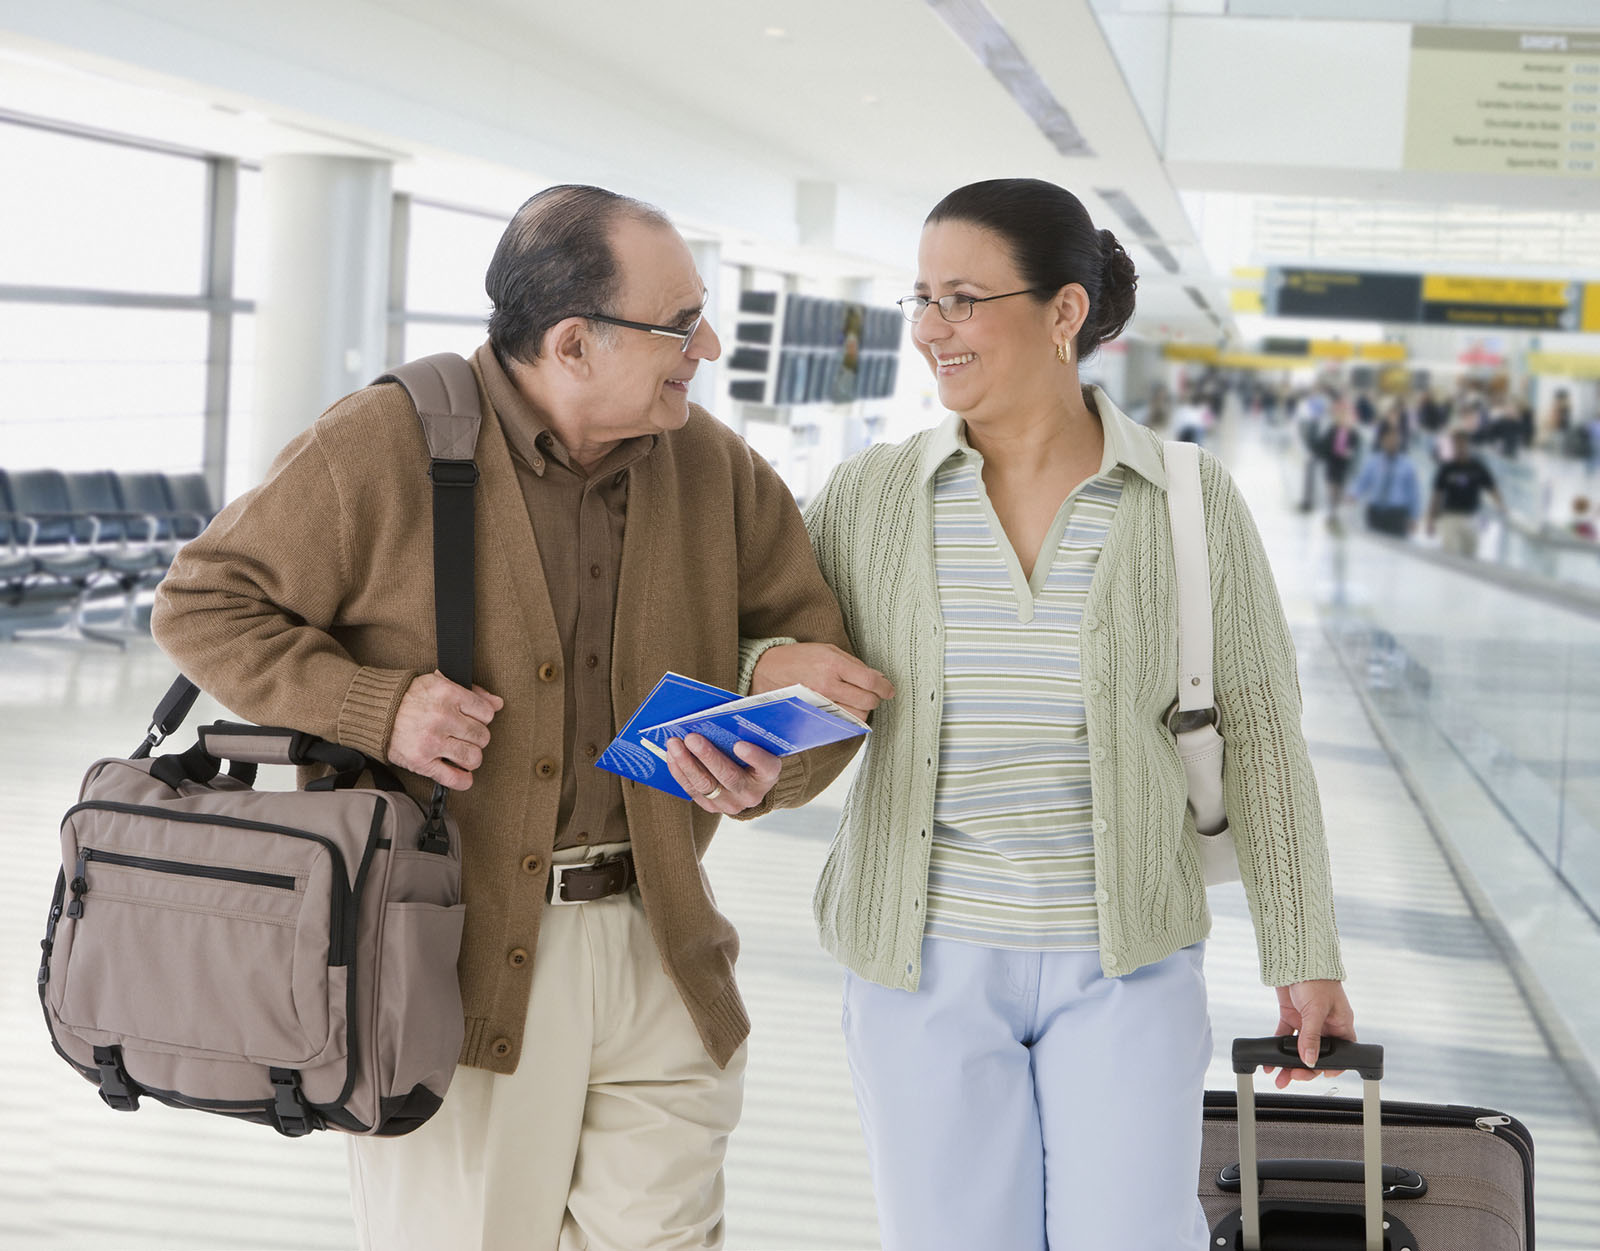 How To Find Senior Travel Companions Lovetoknow